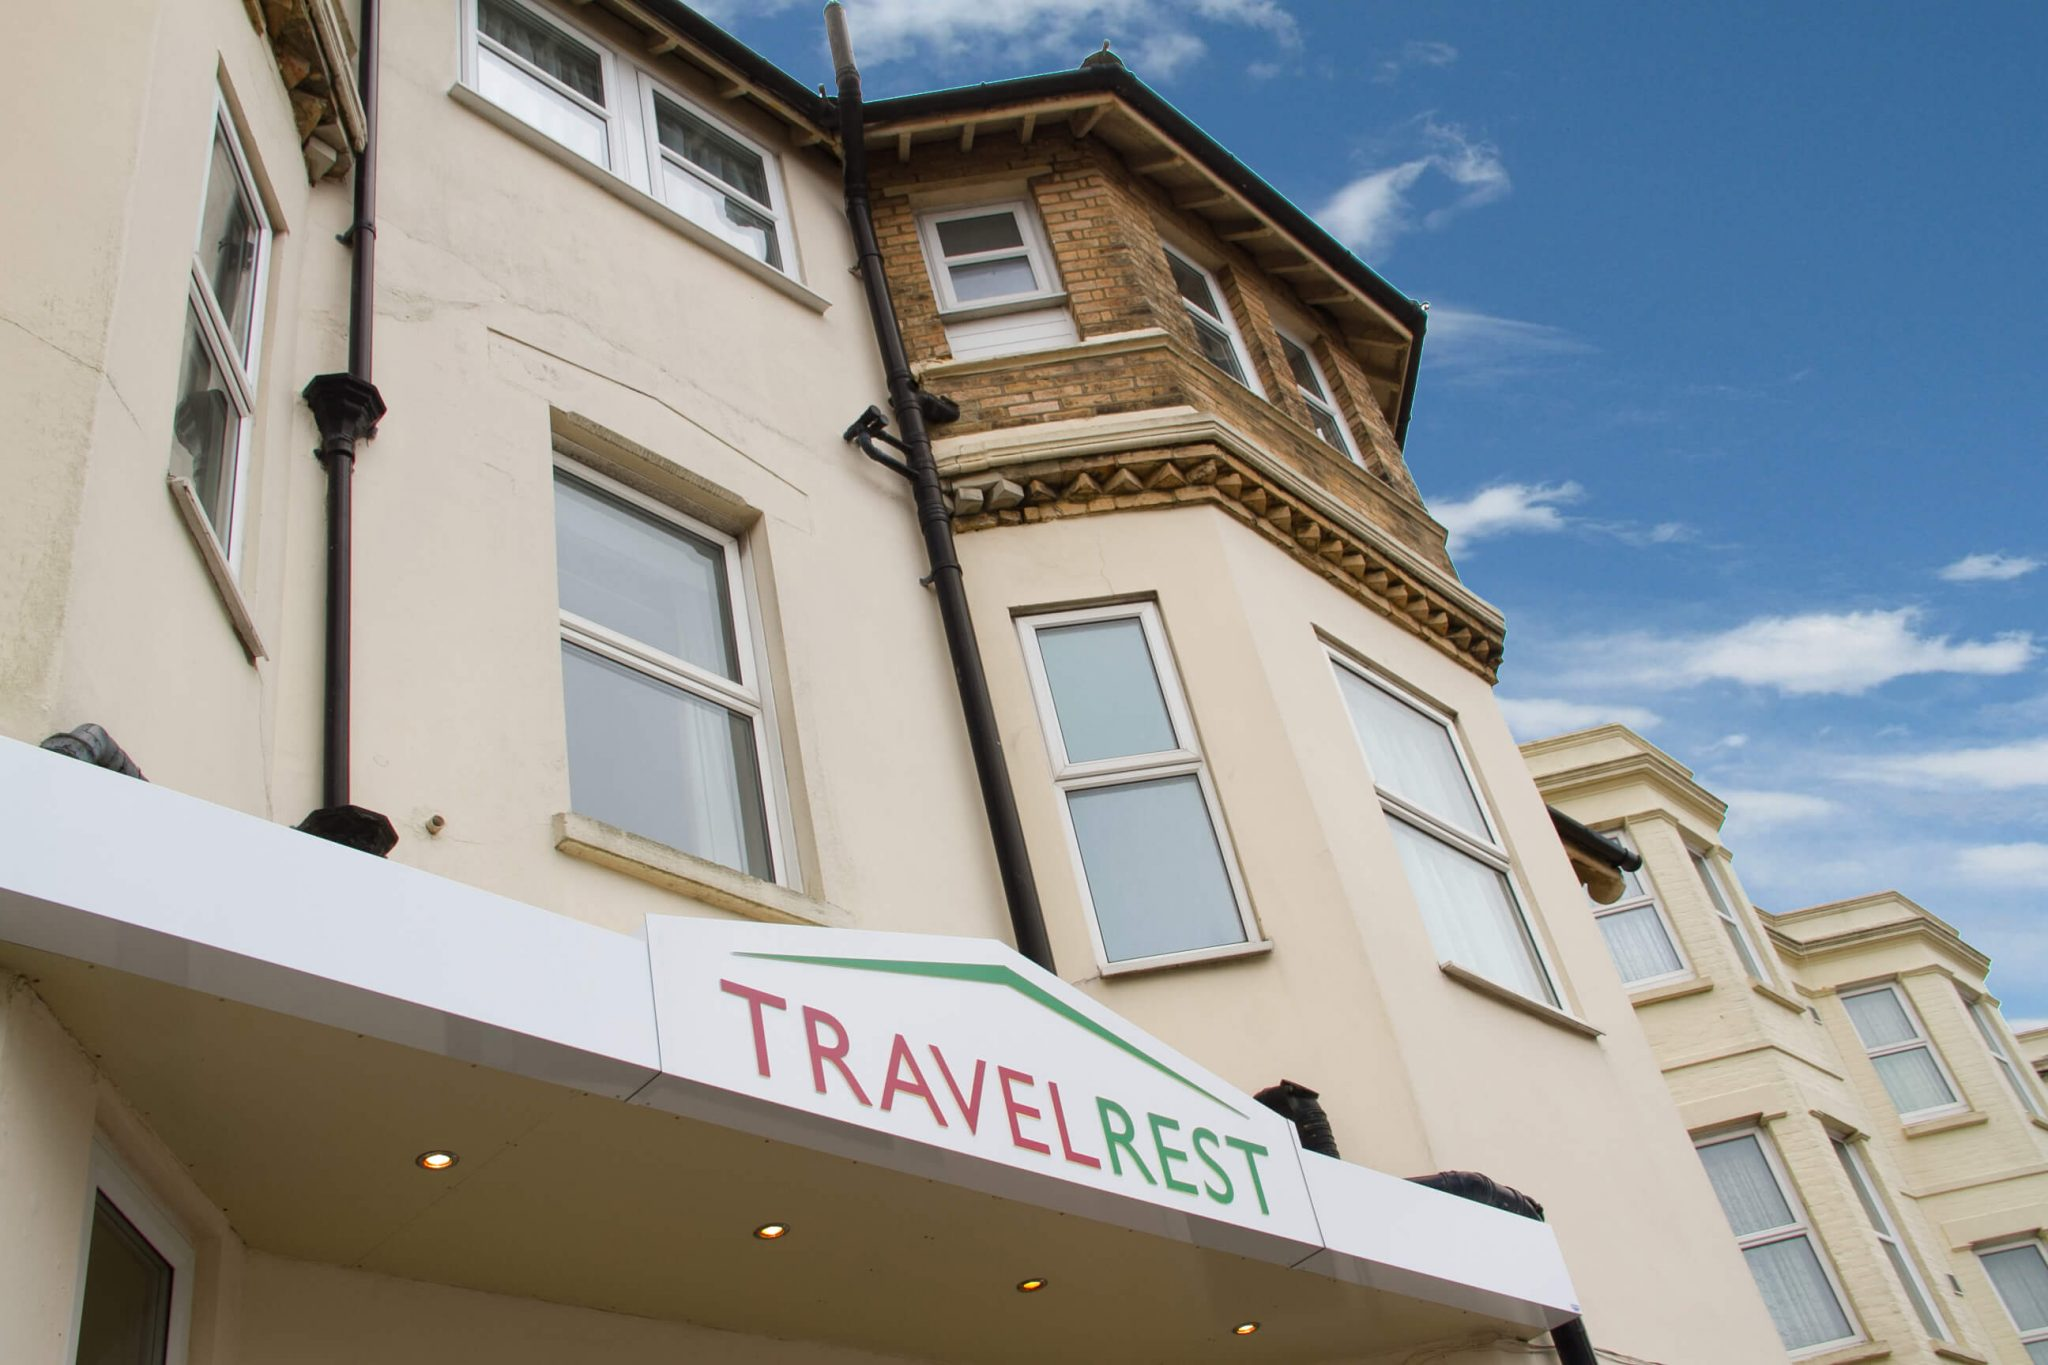 Bournemouth West Cliff Exterior - TravelRest Hotels